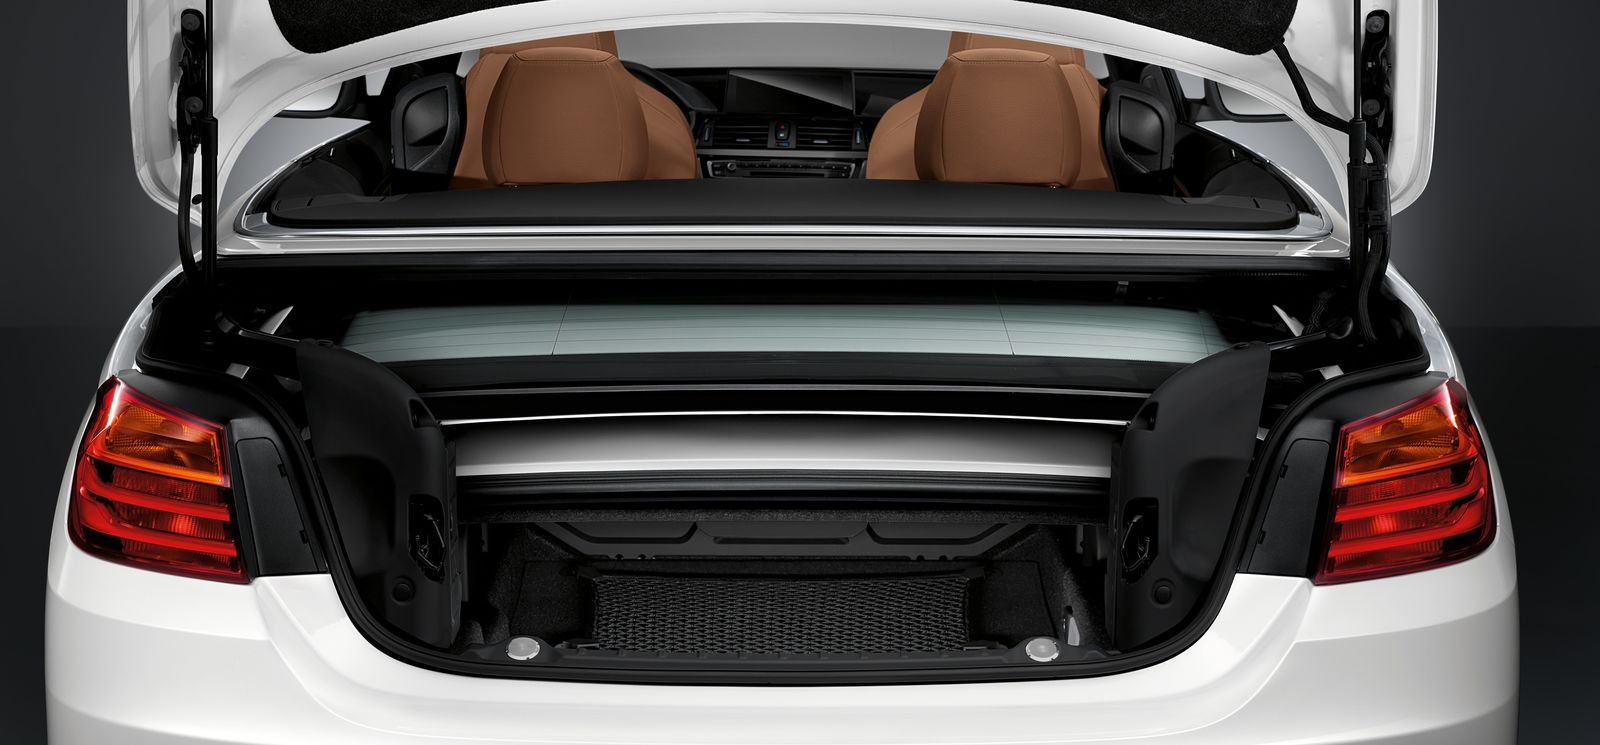 Bmw 4 Series Amp Convertible Sizes Amp Dimensions Guide Carwow